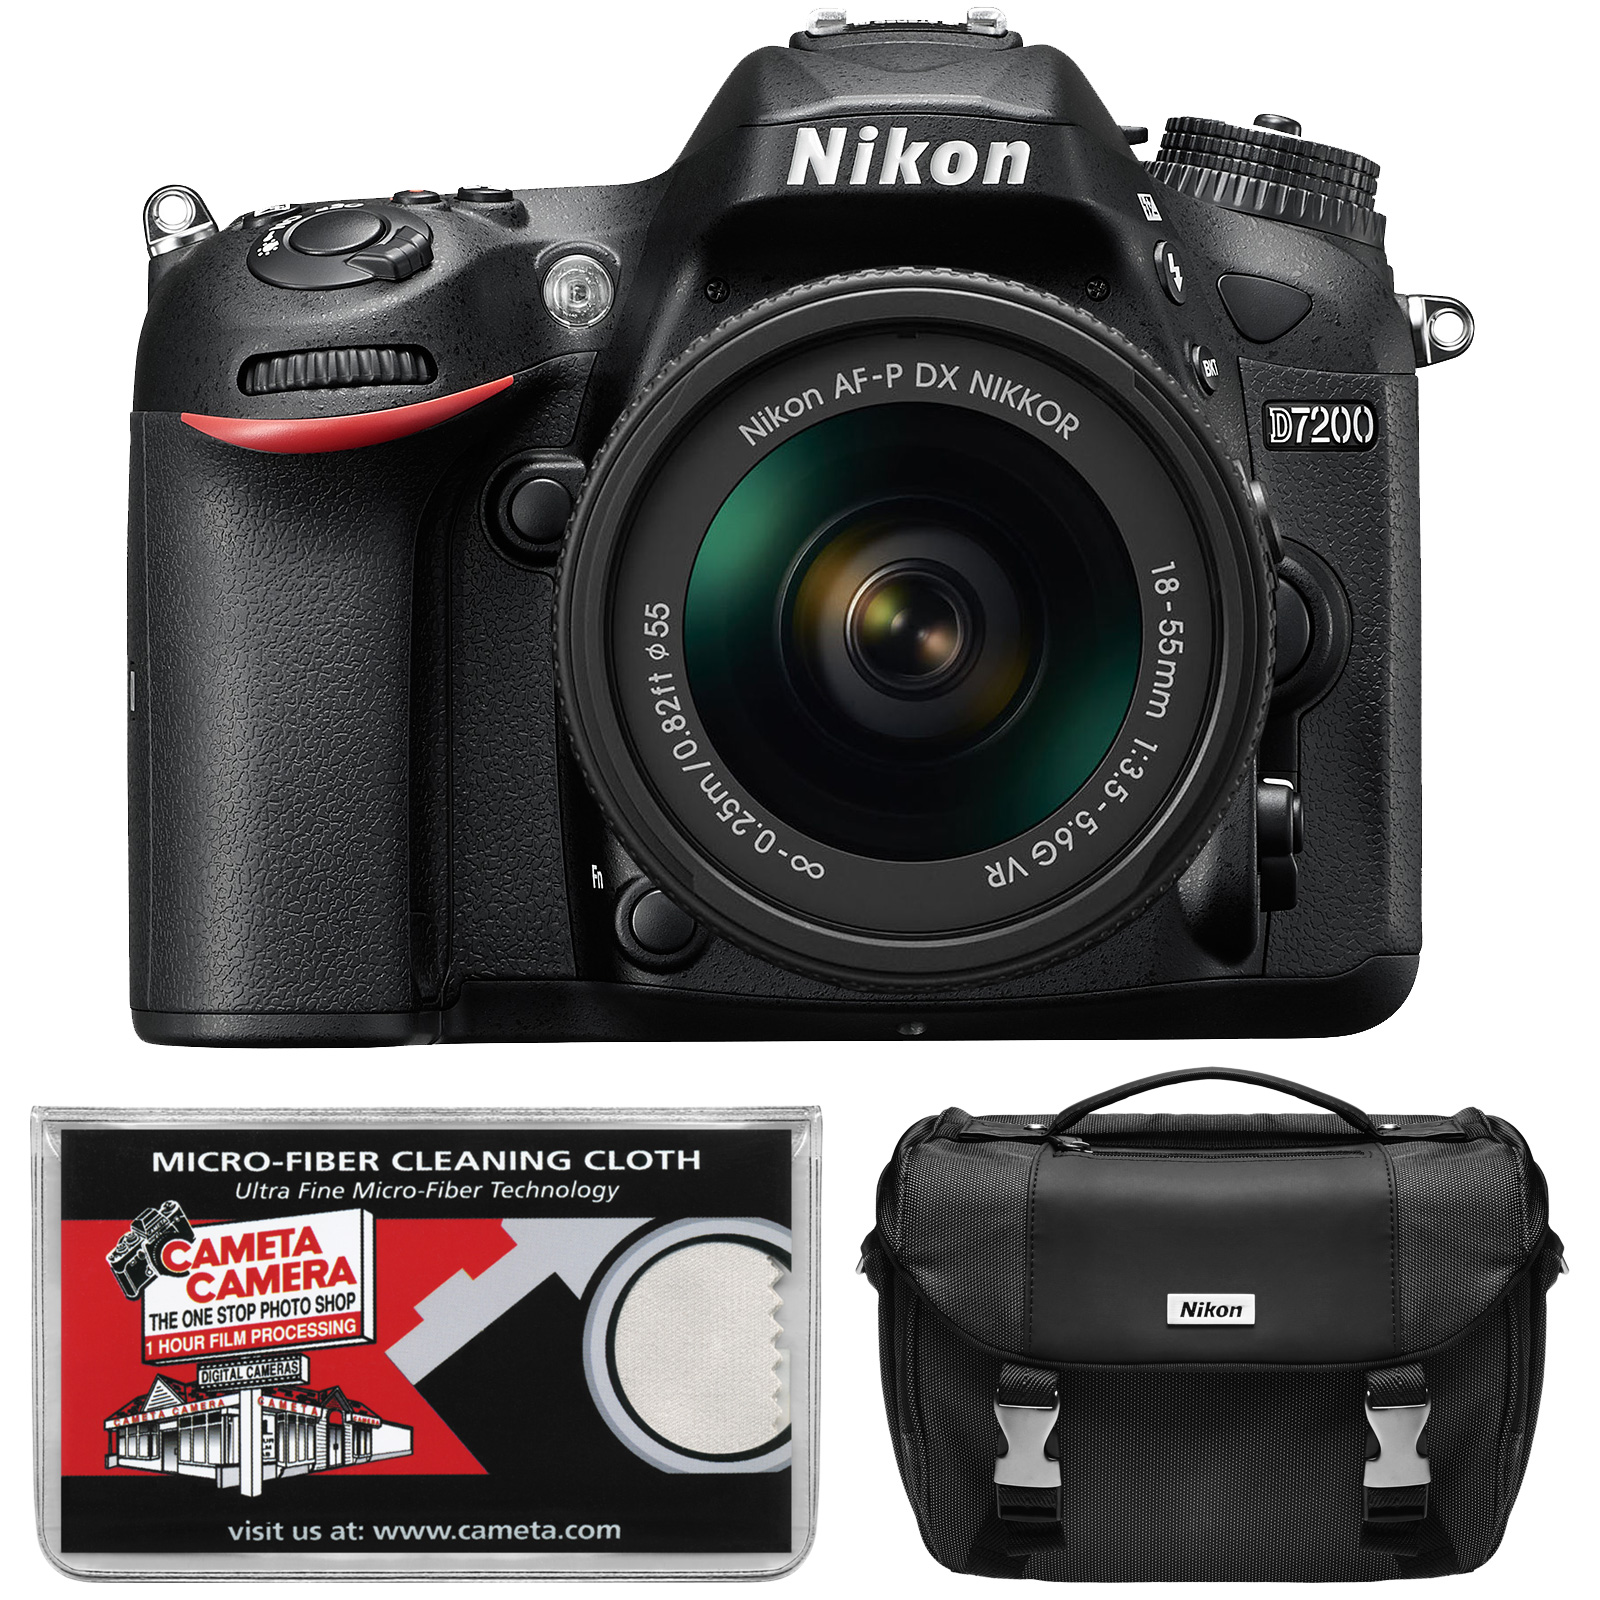 Nikon D7200 Wi-Fi Digital SLR Camera Body - Factory Refurbished with AF-P 18-55mm G VR DX Zoom Lens + Case + Kit